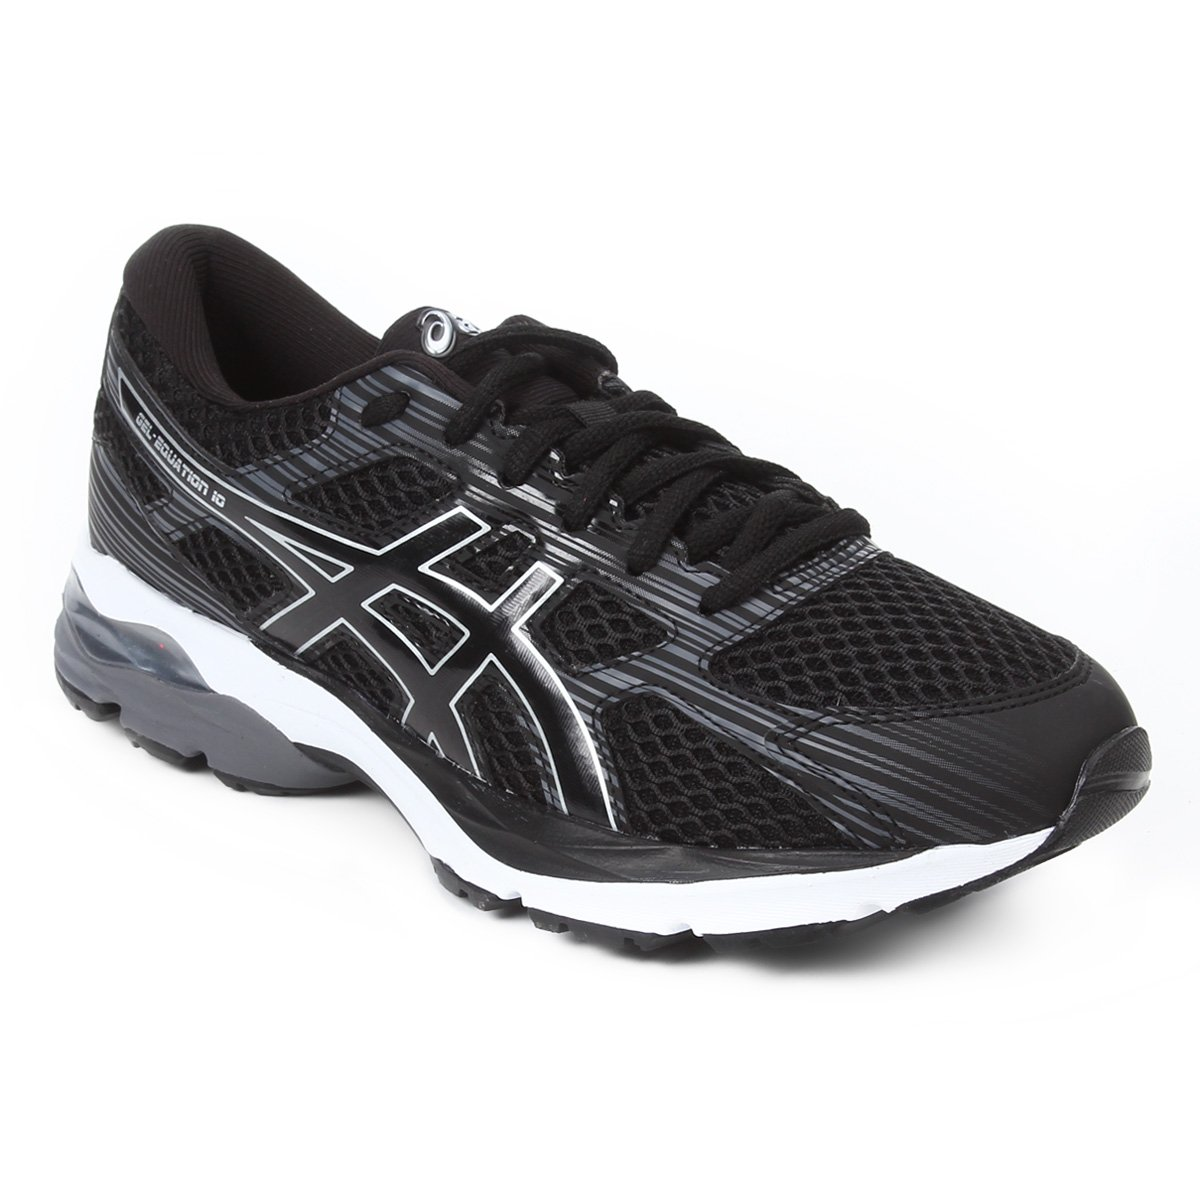 Tenis Masculino Asics Gel Equation 10 - Preto